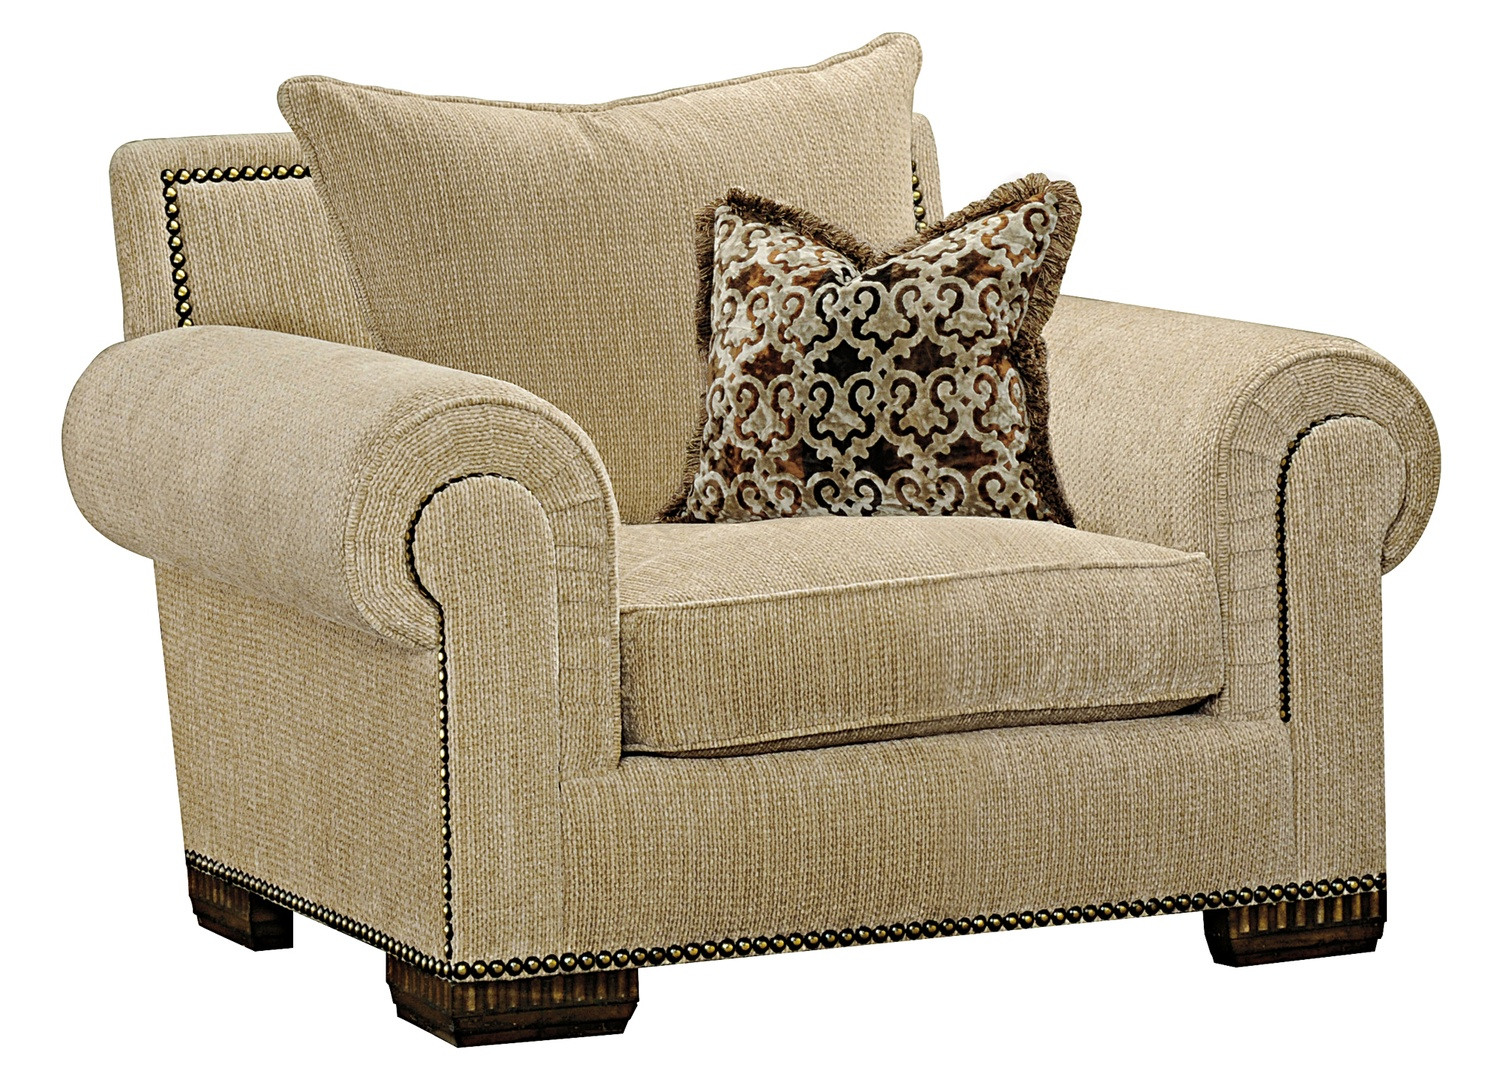 Bentley lounge chair marge carson for Carson chaise lounge